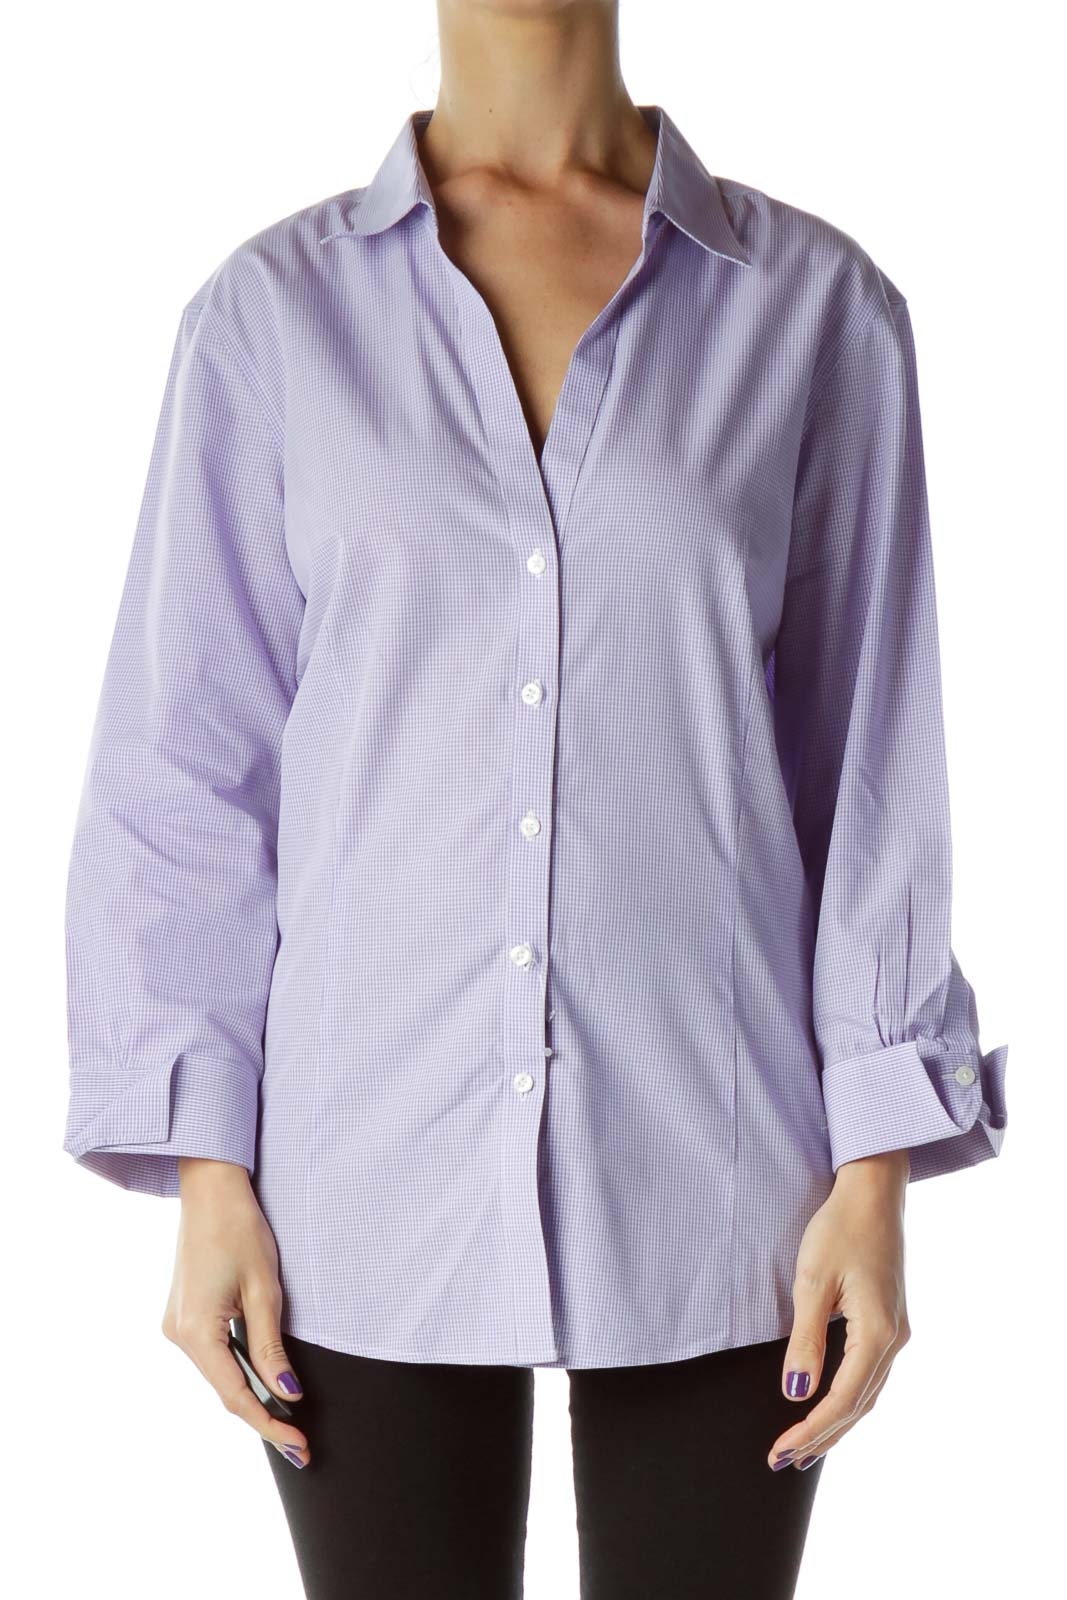 Purple Check 3/4 Sleeve Collared Shirt